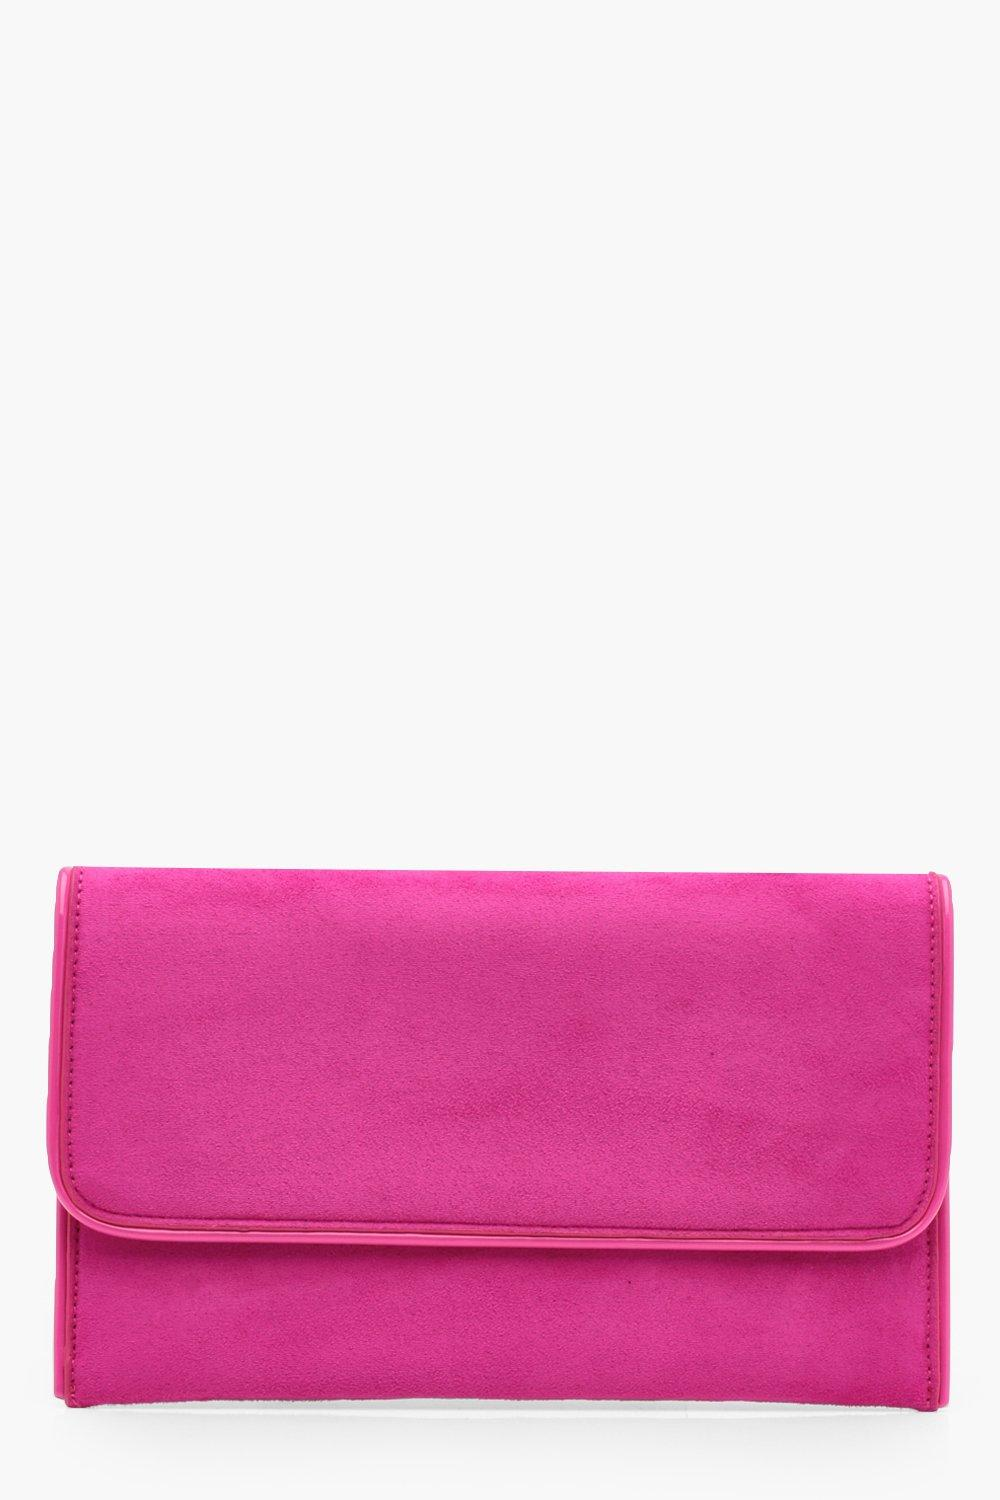 Piped Edge Suedette Clutch - pink - Emma Piped Edg